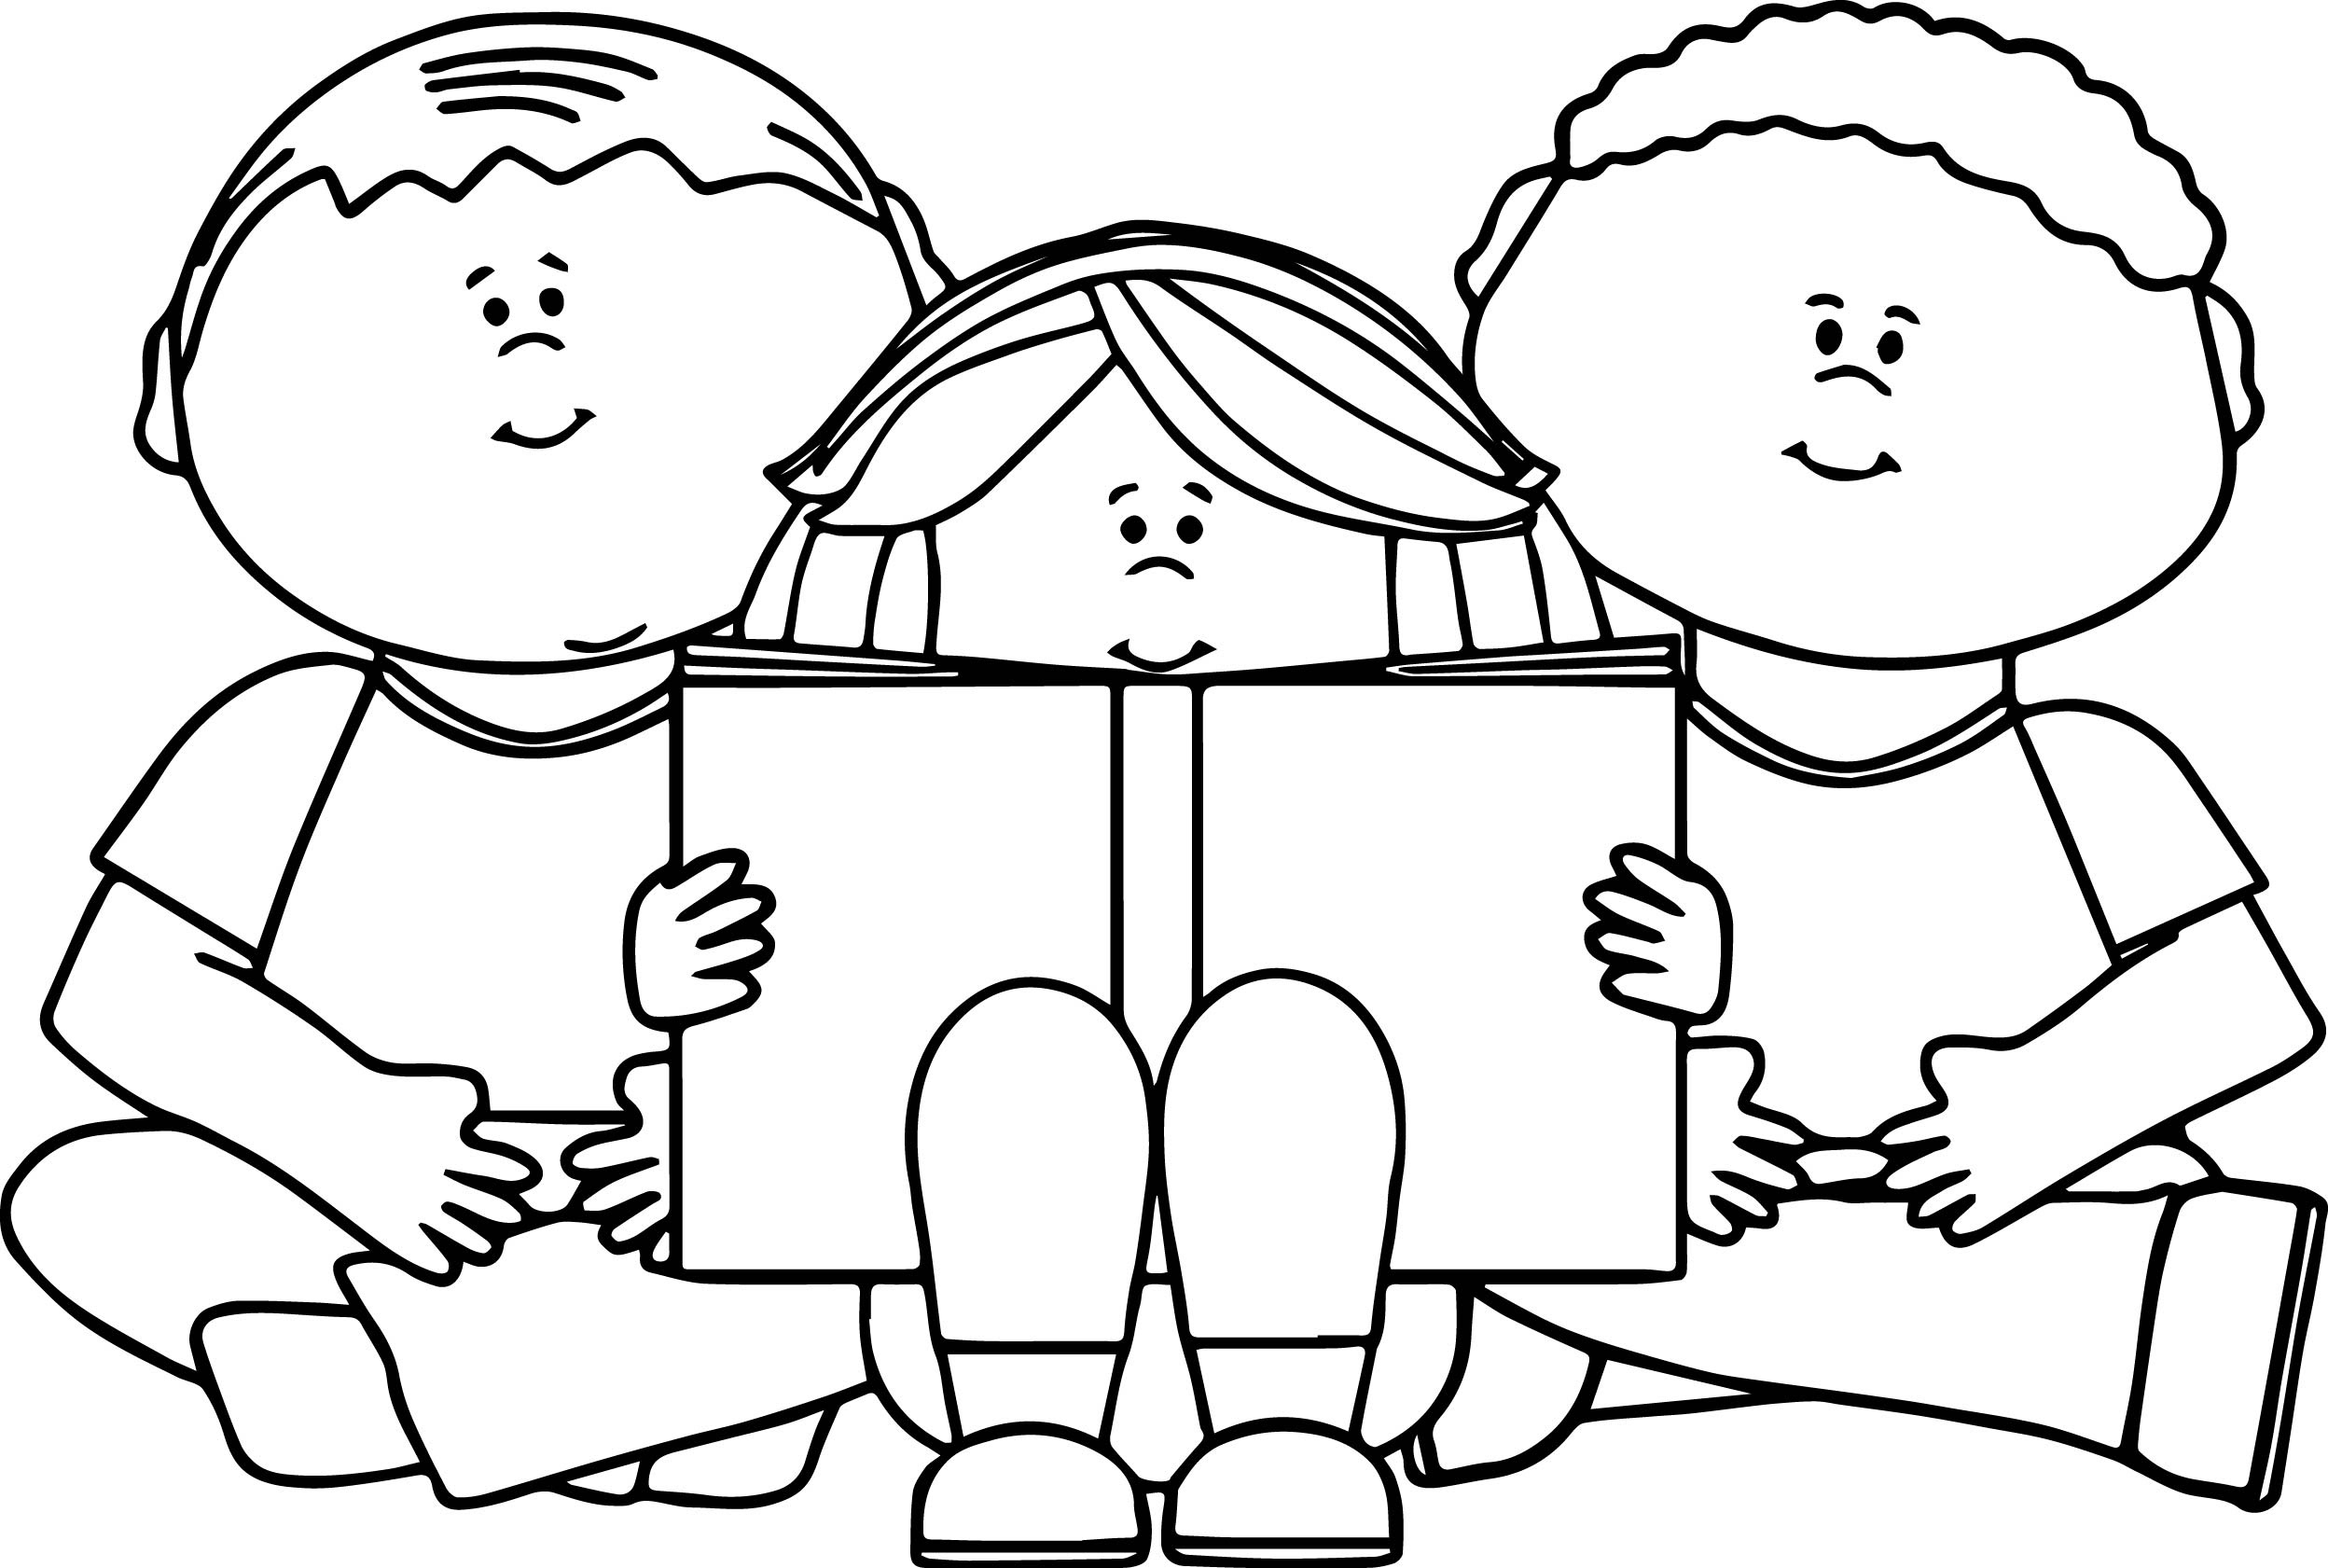 Kids Reading Book Coloring Page | Wecoloringpage.com